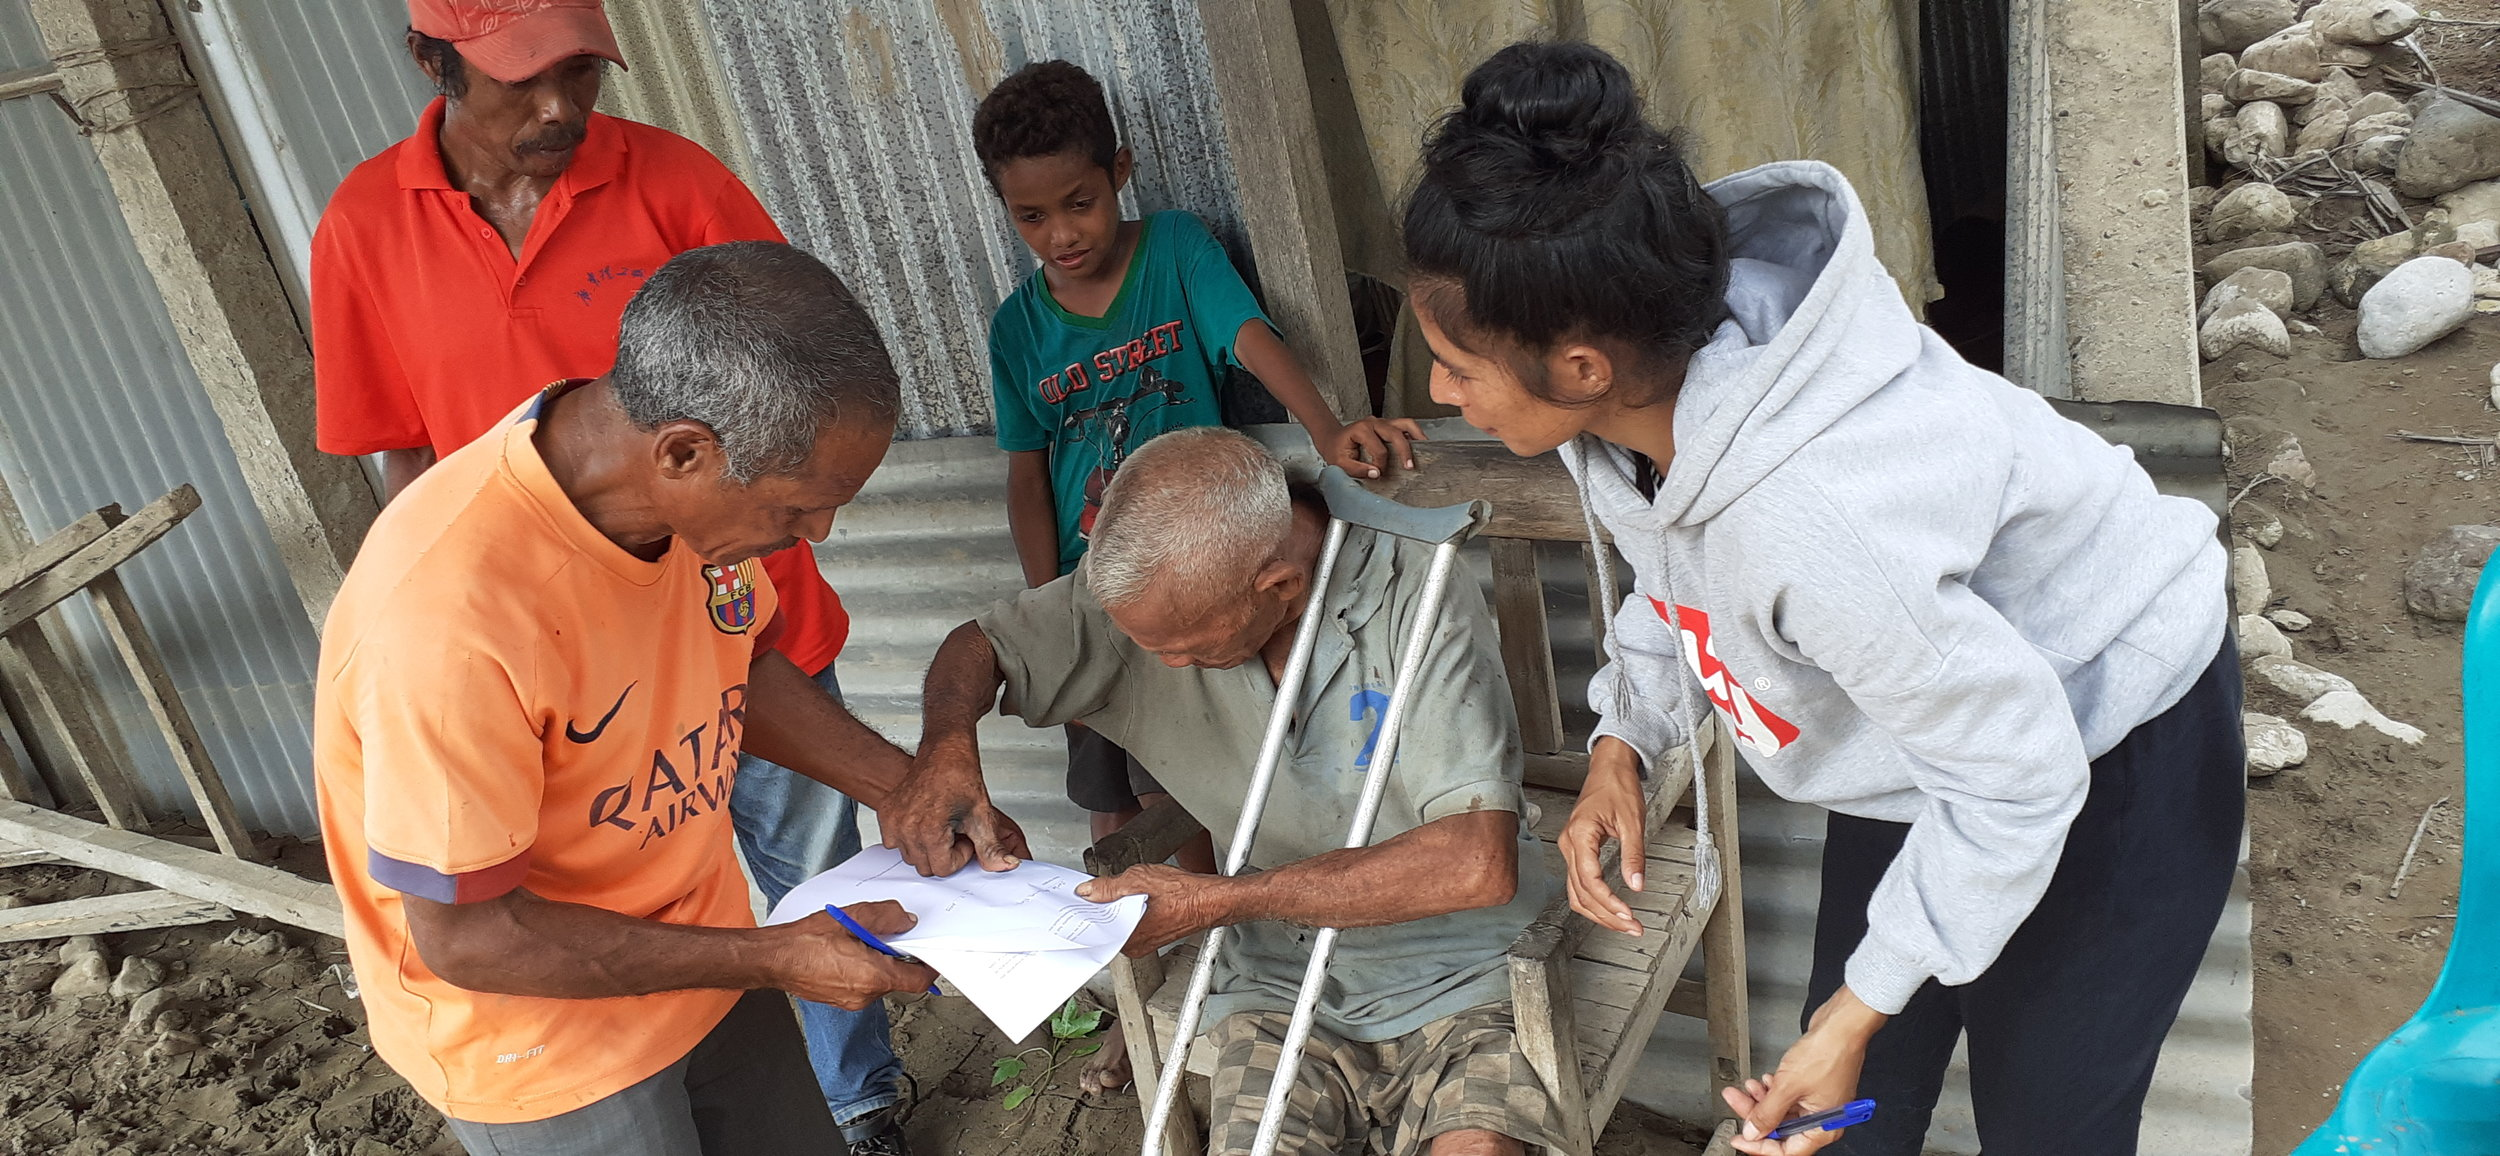 Above: Iliali village resident, Carlos, signs the consent interview and photo consent forms during the risk assessment consultations. Photo credit: Gaspar da Silva, ChildFund Timor-Leste.